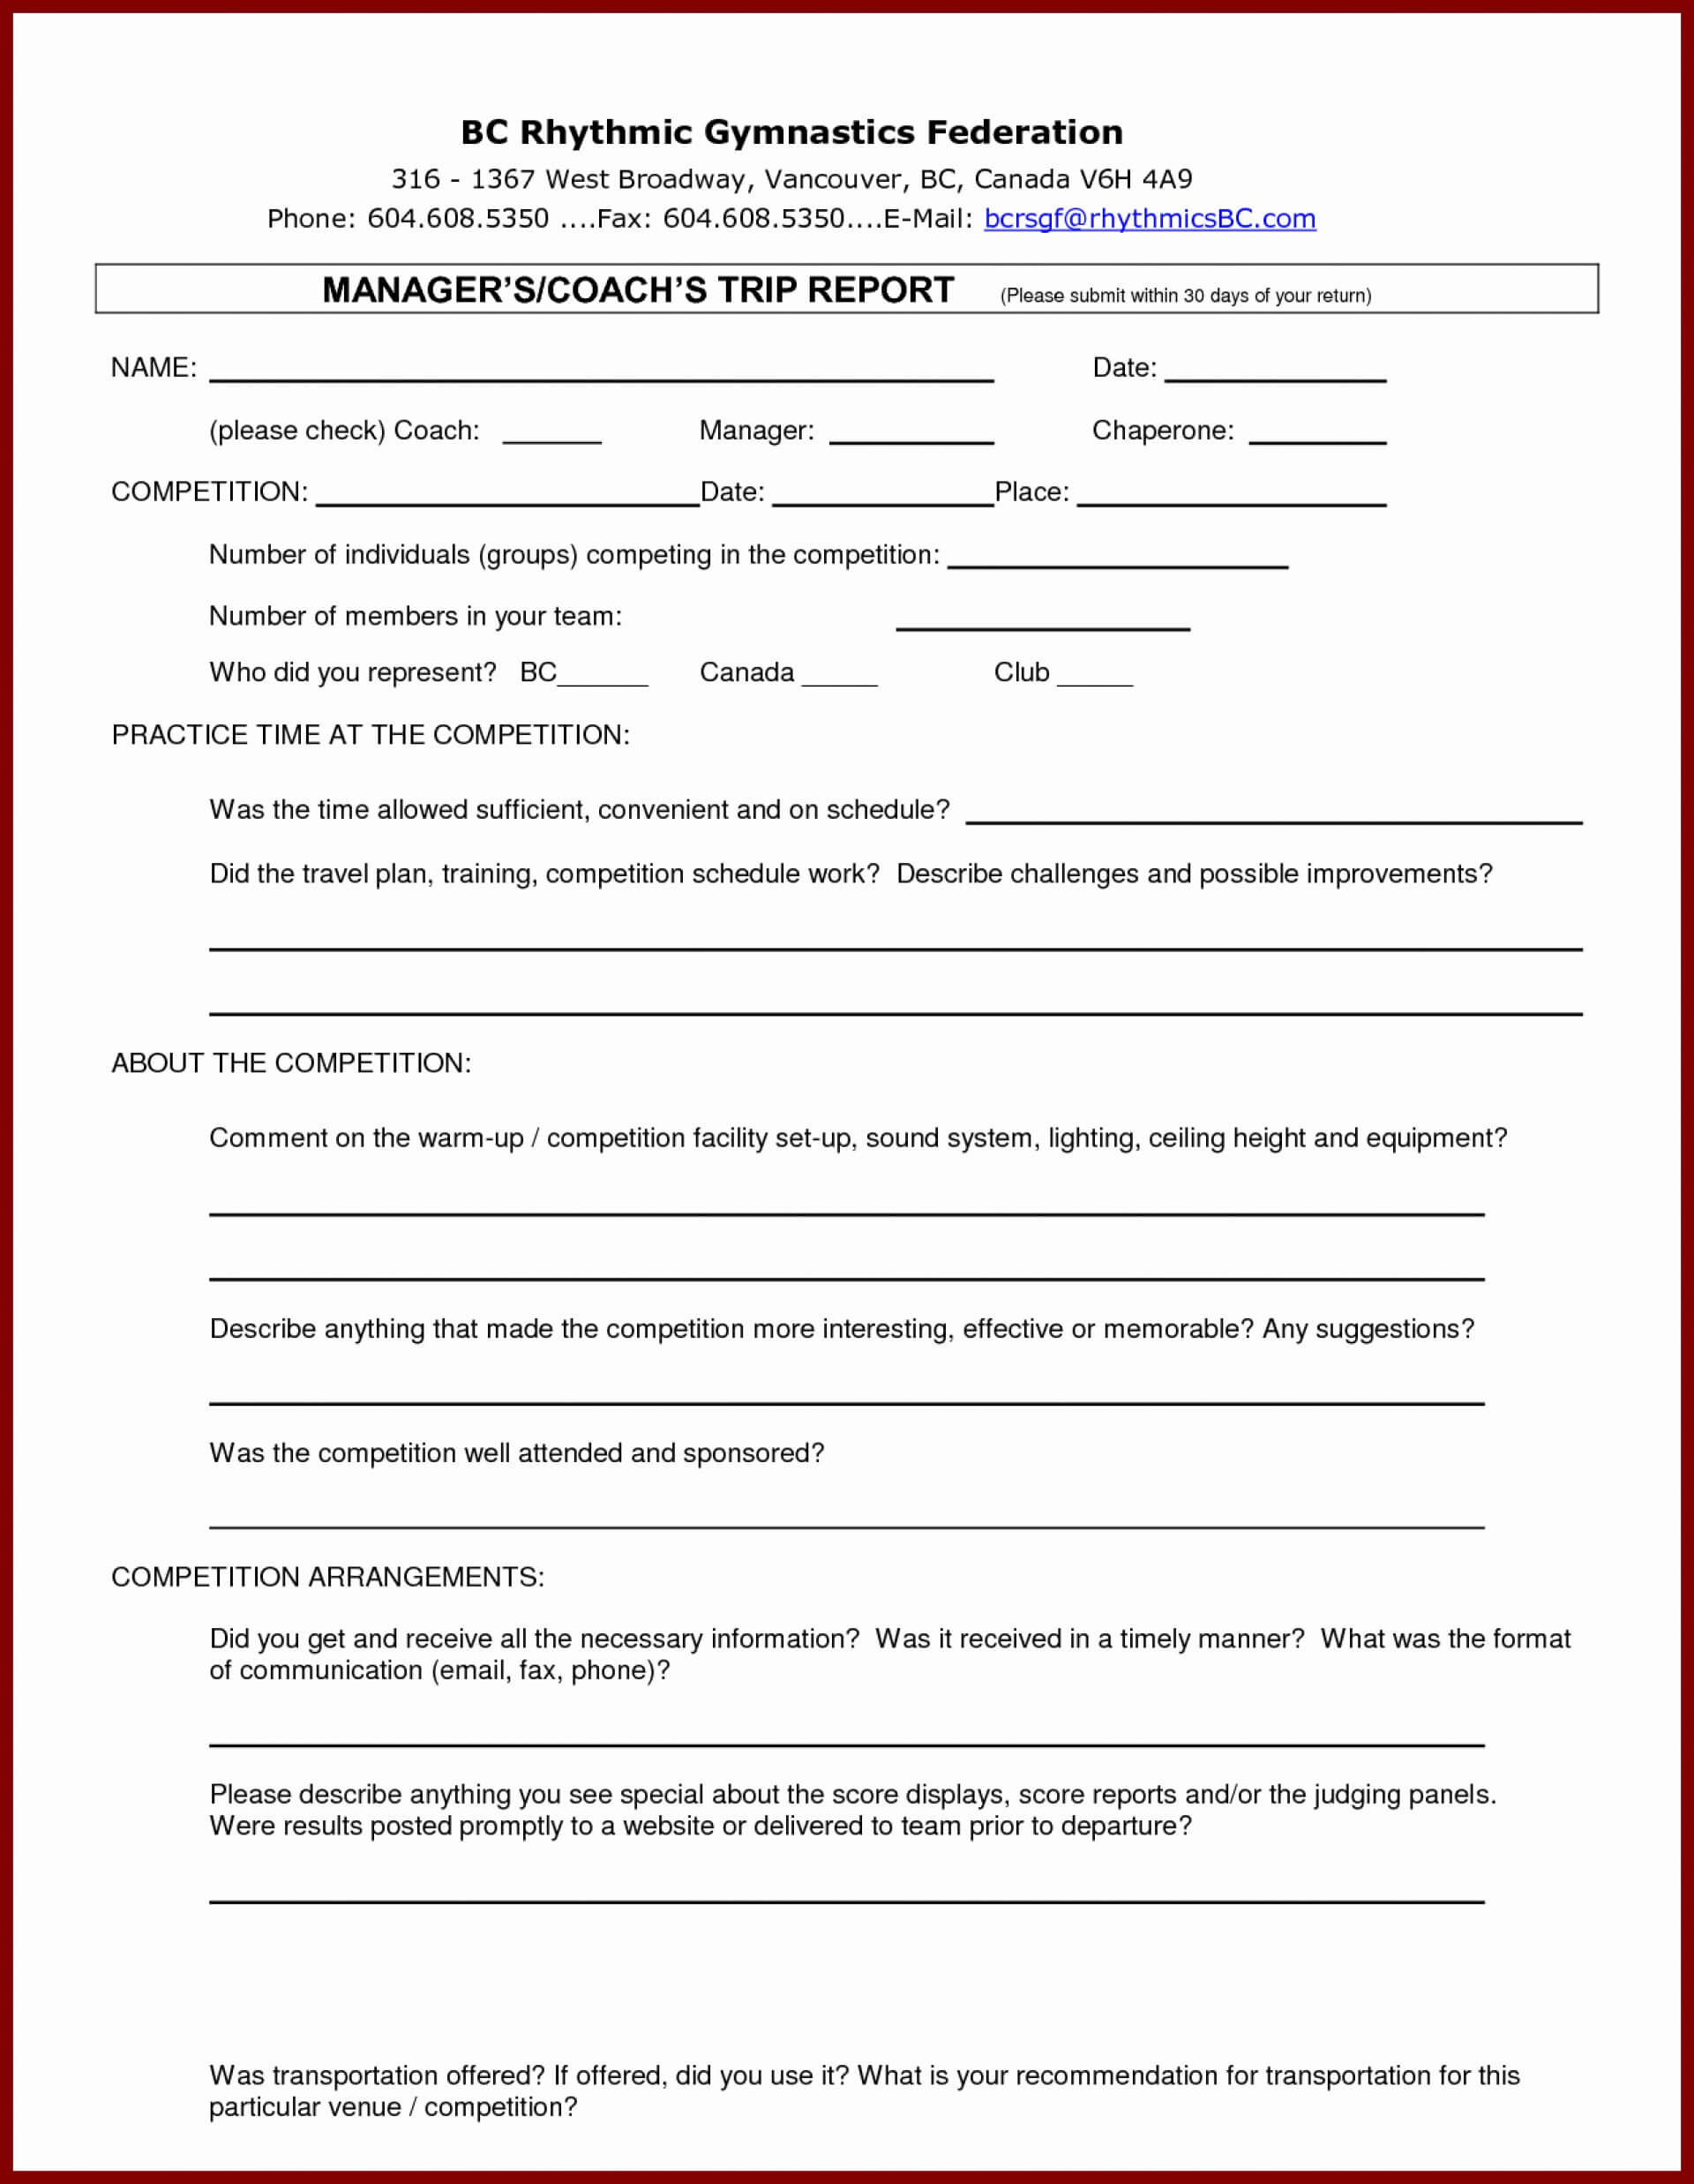 035 Report How To Write Formal Business Template Ample Pdf Regarding Sound Report Template